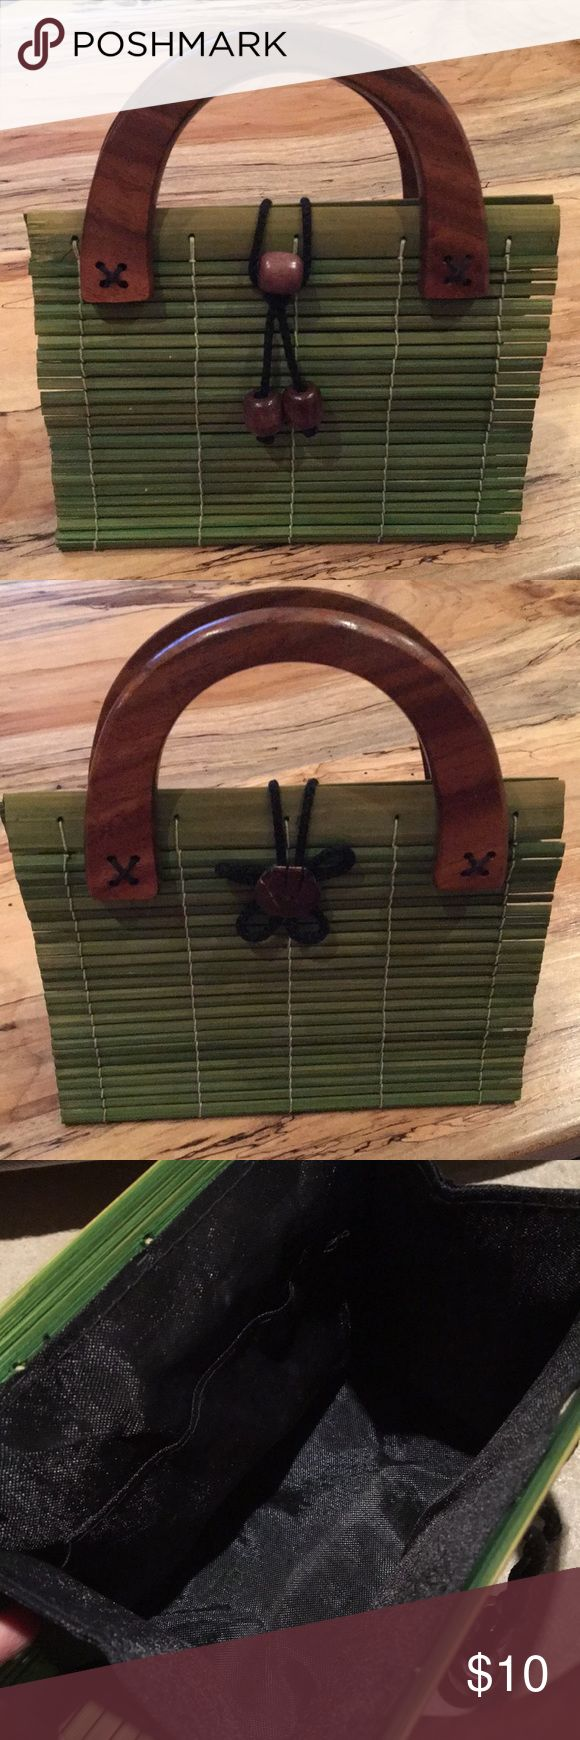 """Small Green Wooden Handbag Gently used adorable matchstick wood handbag with thick wooden handles. Purchased in Hawaii many years ago. Clasp is a rope that loops over a wooden button in front. Lined with black fabric, and one small pocket on inside. 8"""" wide, 6.5"""" tall. Bags"""